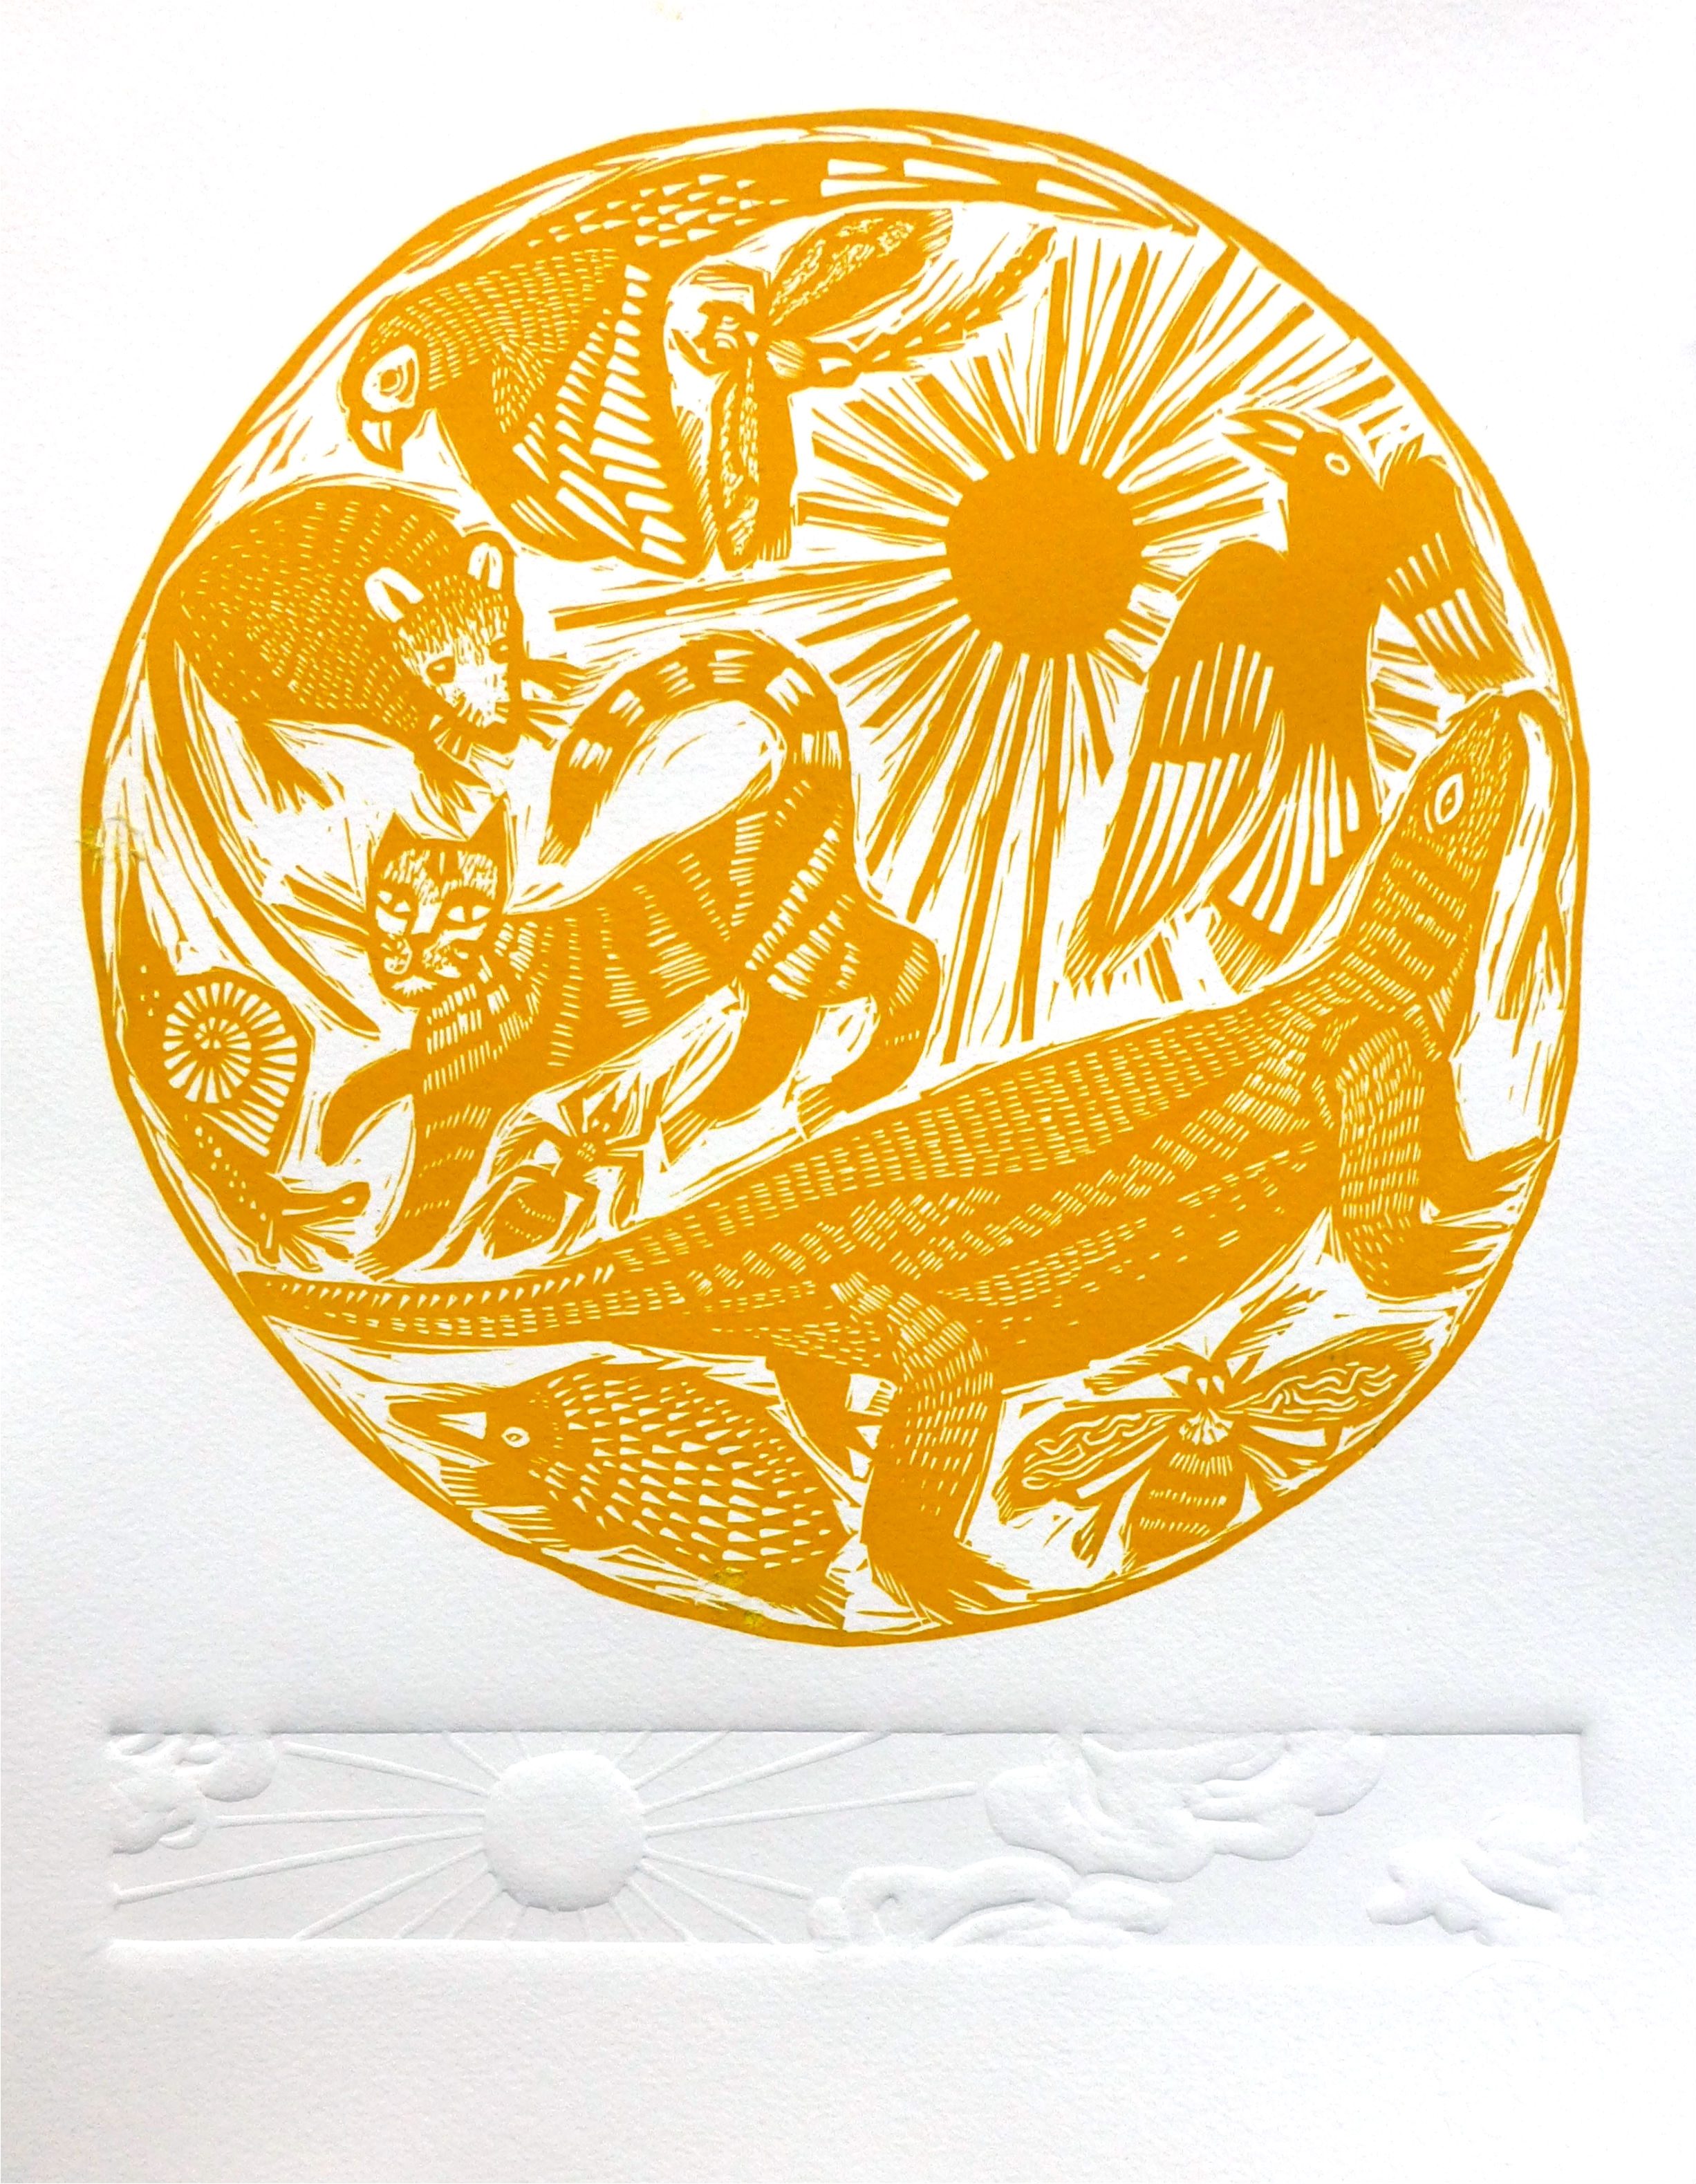 Creatures of the Day   Linocut with embossing, 2017  Edition of 20  Paper size: 35 cm x 28 cm  $100